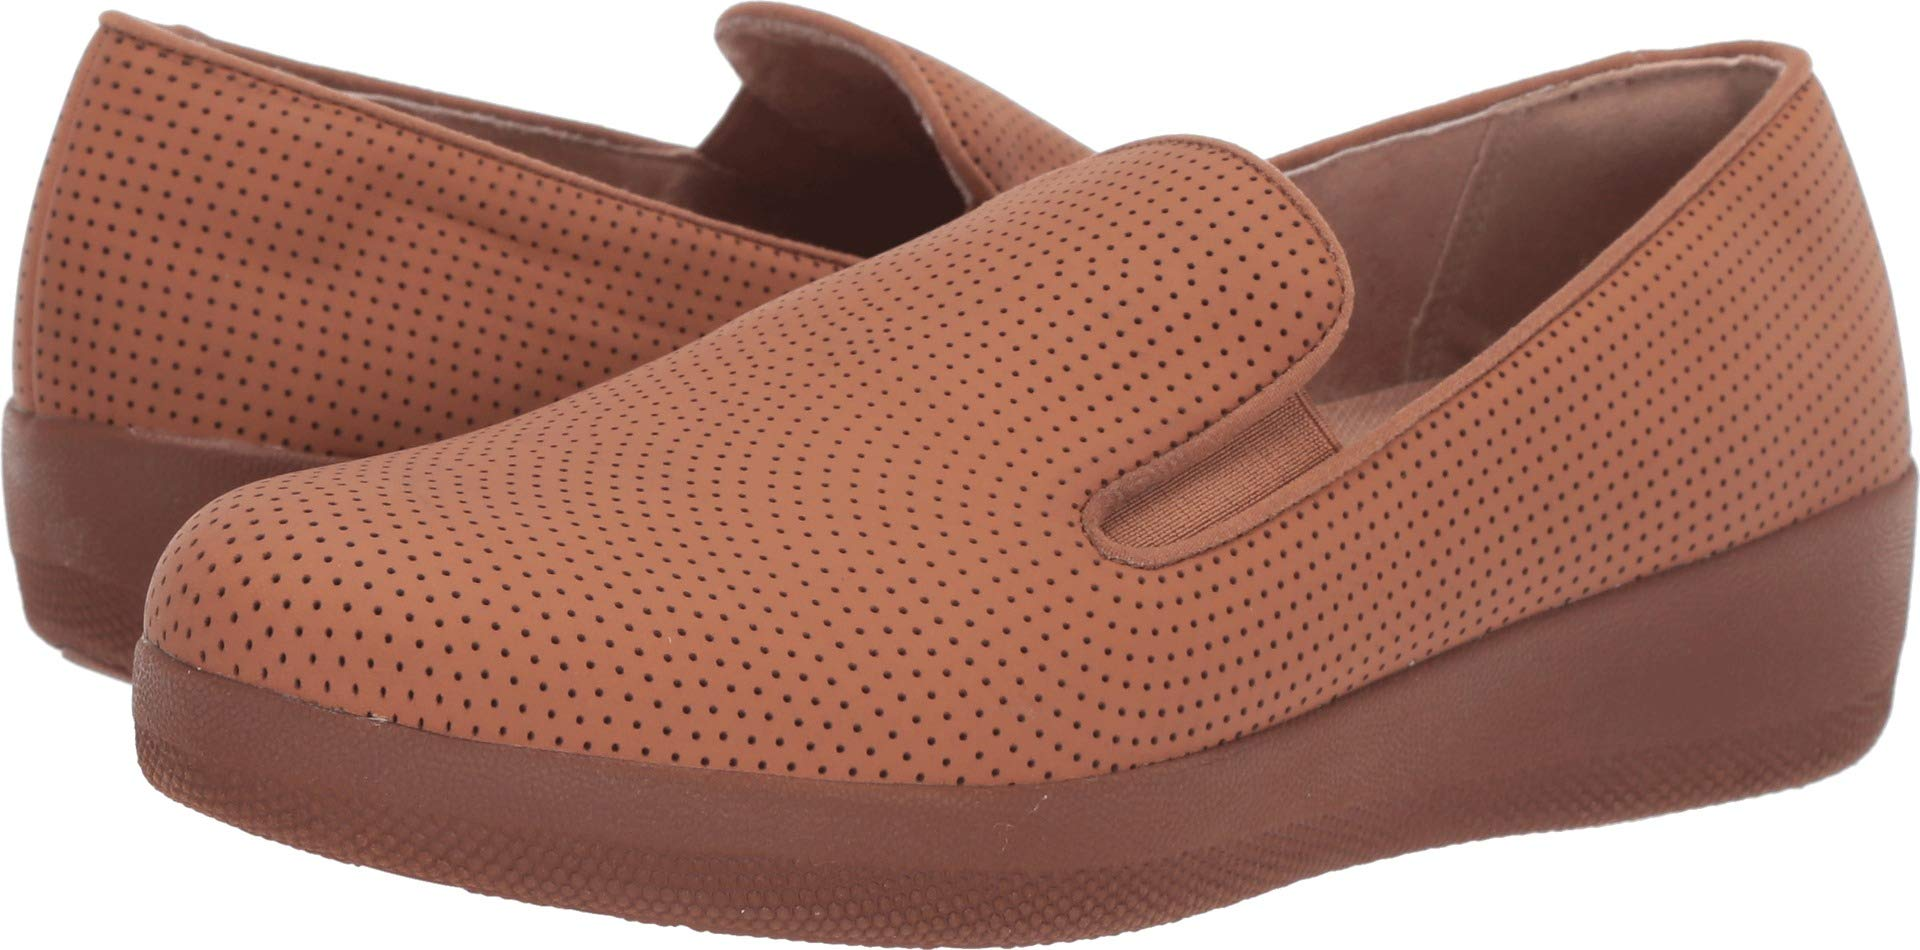 FITFLOP Women's Superskate Perforated Skate Shoe Light Tan 6 M US by FITFLOP